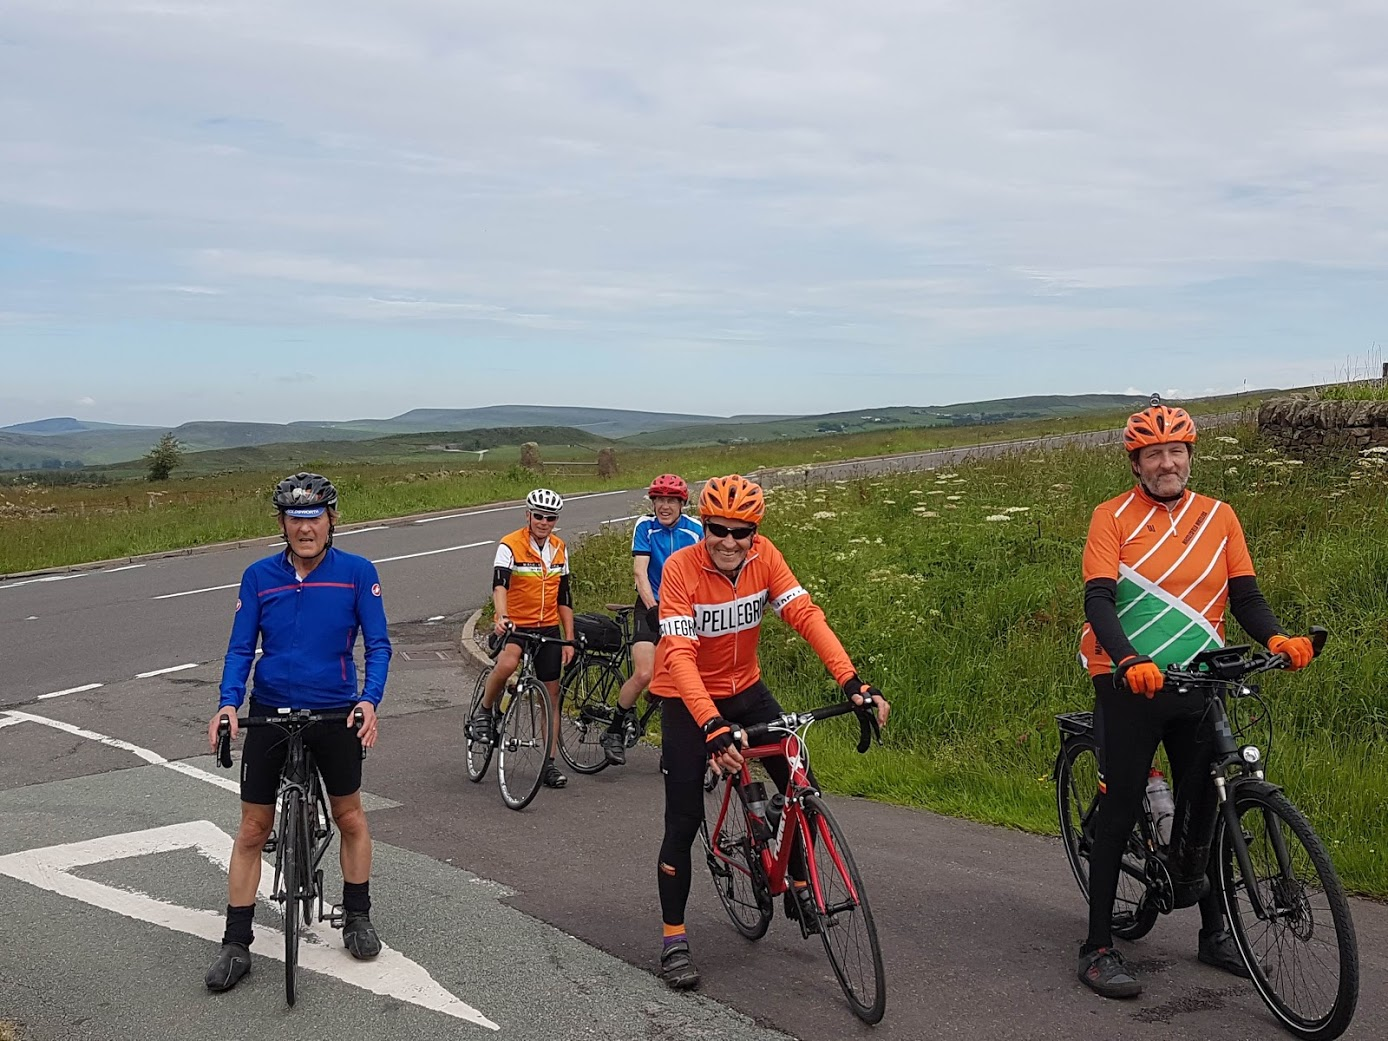 Dave, Moray, Raph, Andy, Simon at mile 11, with the iconic A53 behind us (and a few climbs ahead of us).